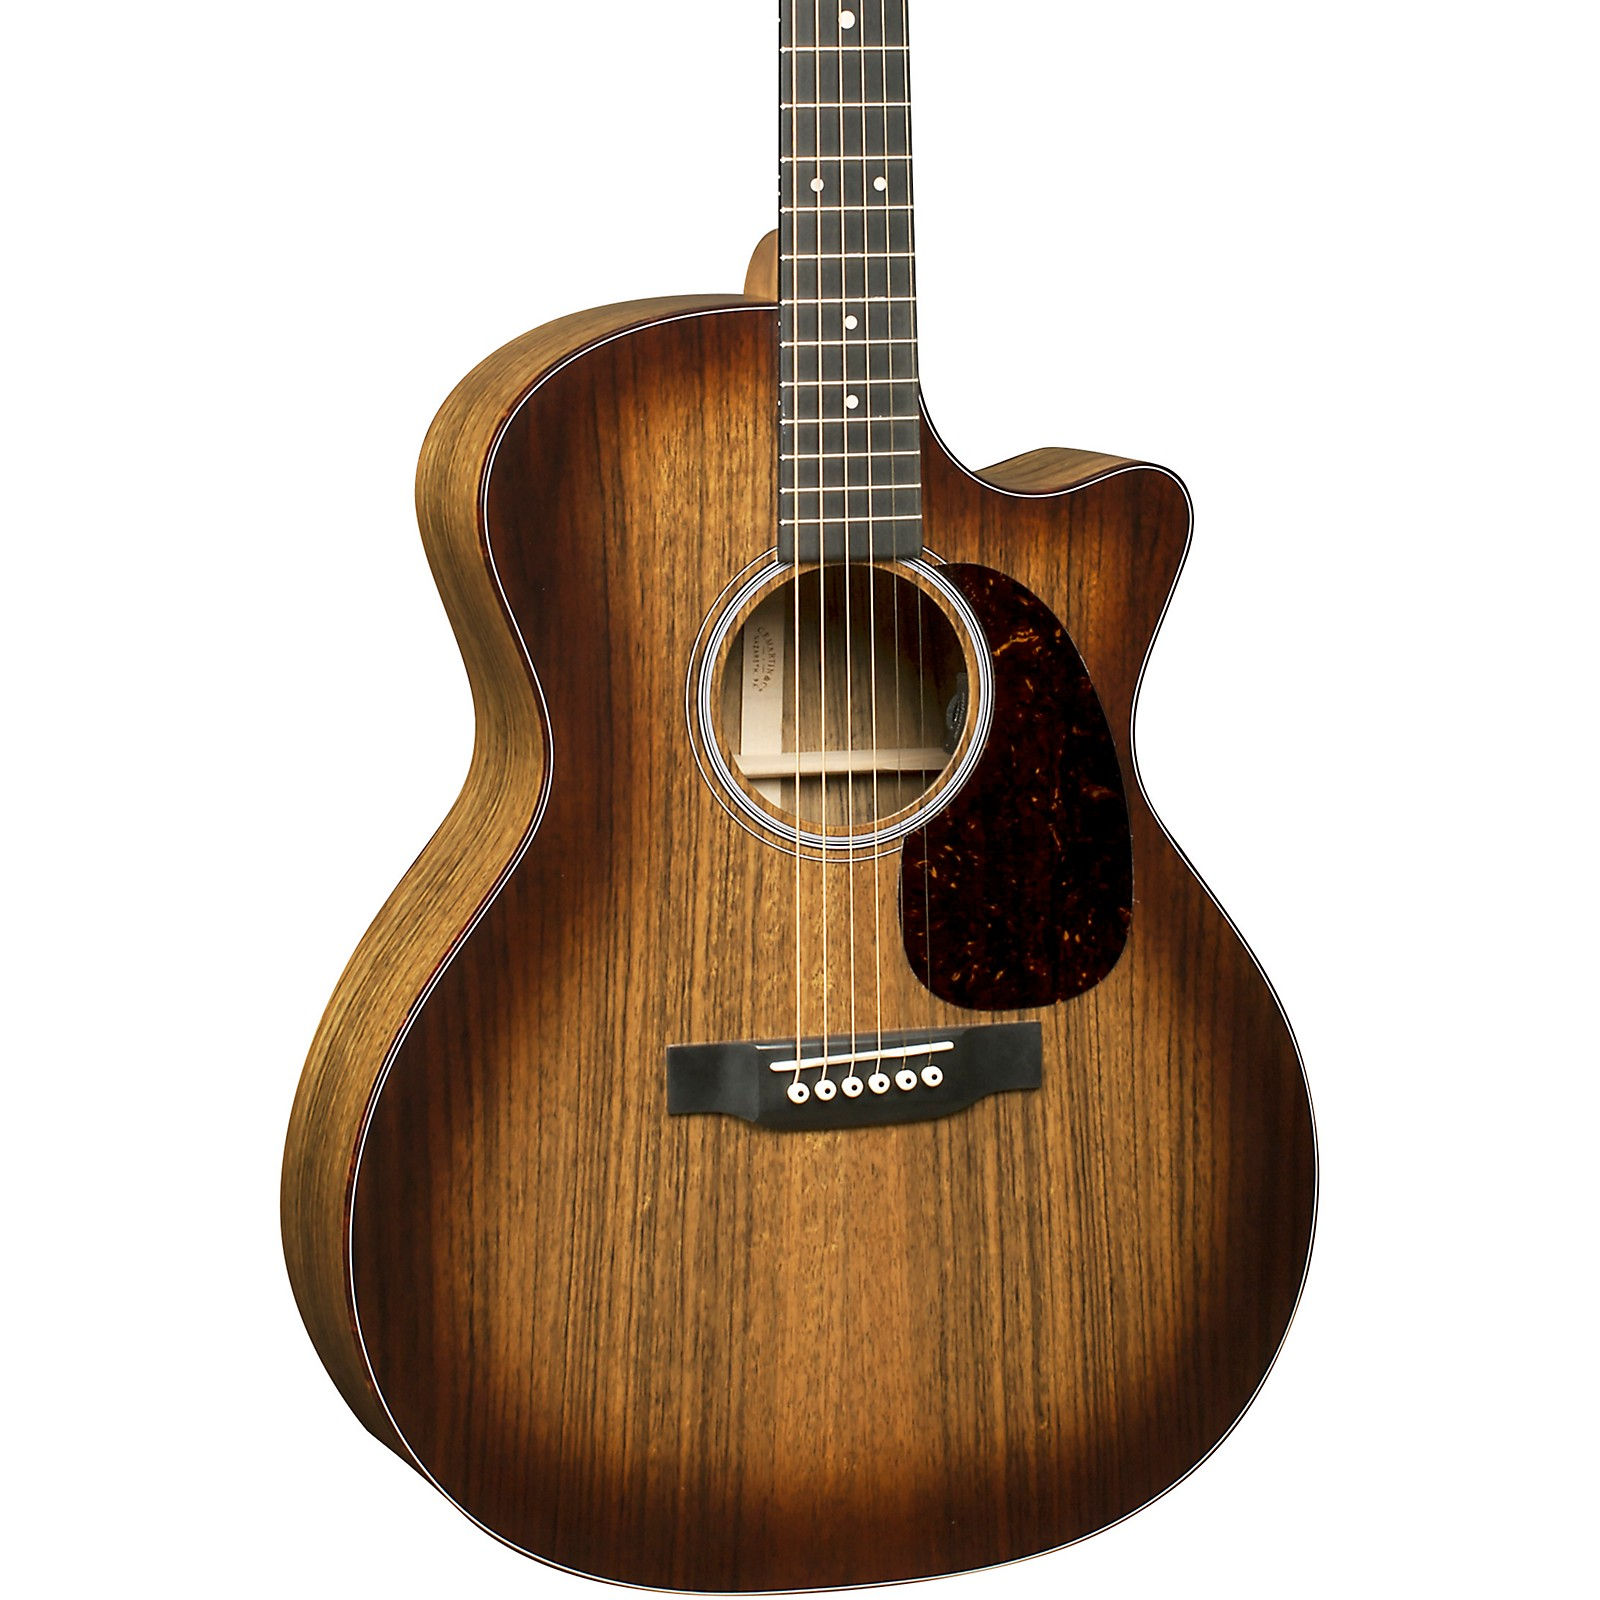 Martin Special Grand Performance Cutaway Performing Artist Style Ovangkol Acoustic-Electric Guitar